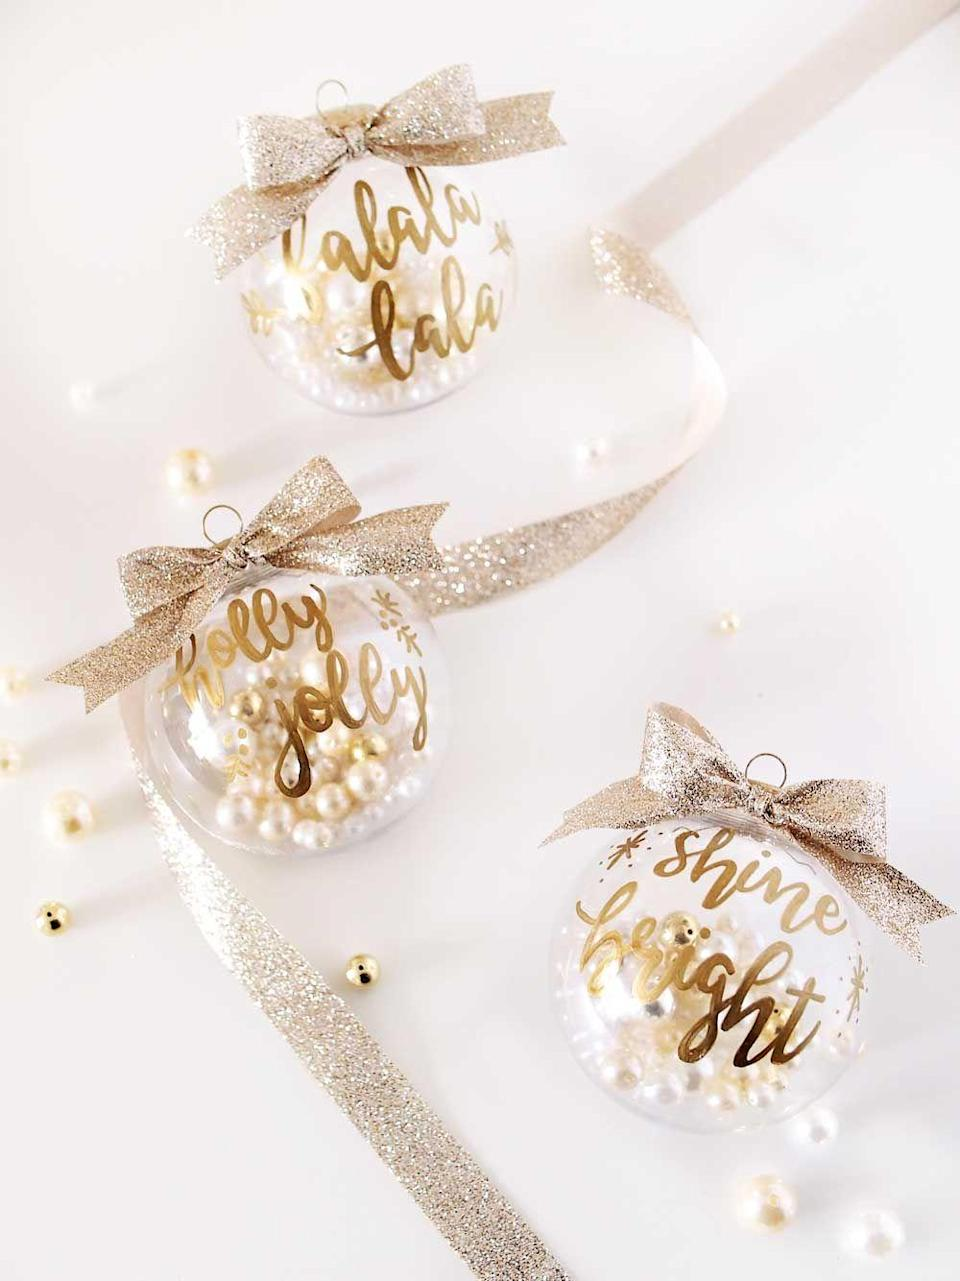 """<p>Don't worry: You don't need impressive calligraphy skills to create these beauties at home. This blogger's tutorial makes it easy to replicate her fancy designs.</p><p><strong>Get the tutorial at <a href=""""http://www.tingandthings.com/2017/12/diy-gold-hand-lettering-christmas-ornaments.html"""" rel=""""nofollow noopener"""" target=""""_blank"""" data-ylk=""""slk:Ting and Things"""" class=""""link rapid-noclick-resp"""">Ting and Things</a>.</strong></p><p><strong><a class=""""link rapid-noclick-resp"""" href=""""https://www.amazon.com/Sharpie-Oil-Based-Markers-Assorted-Metallic/dp/B000I0VMJU/?tag=syn-yahoo-20&ascsubtag=%5Bartid%7C10050.g.1070%5Bsrc%7Cyahoo-us"""" rel=""""nofollow noopener"""" target=""""_blank"""" data-ylk=""""slk:SHOP GOLD MARKERS"""">SHOP GOLD MARKERS</a><br></strong></p>"""